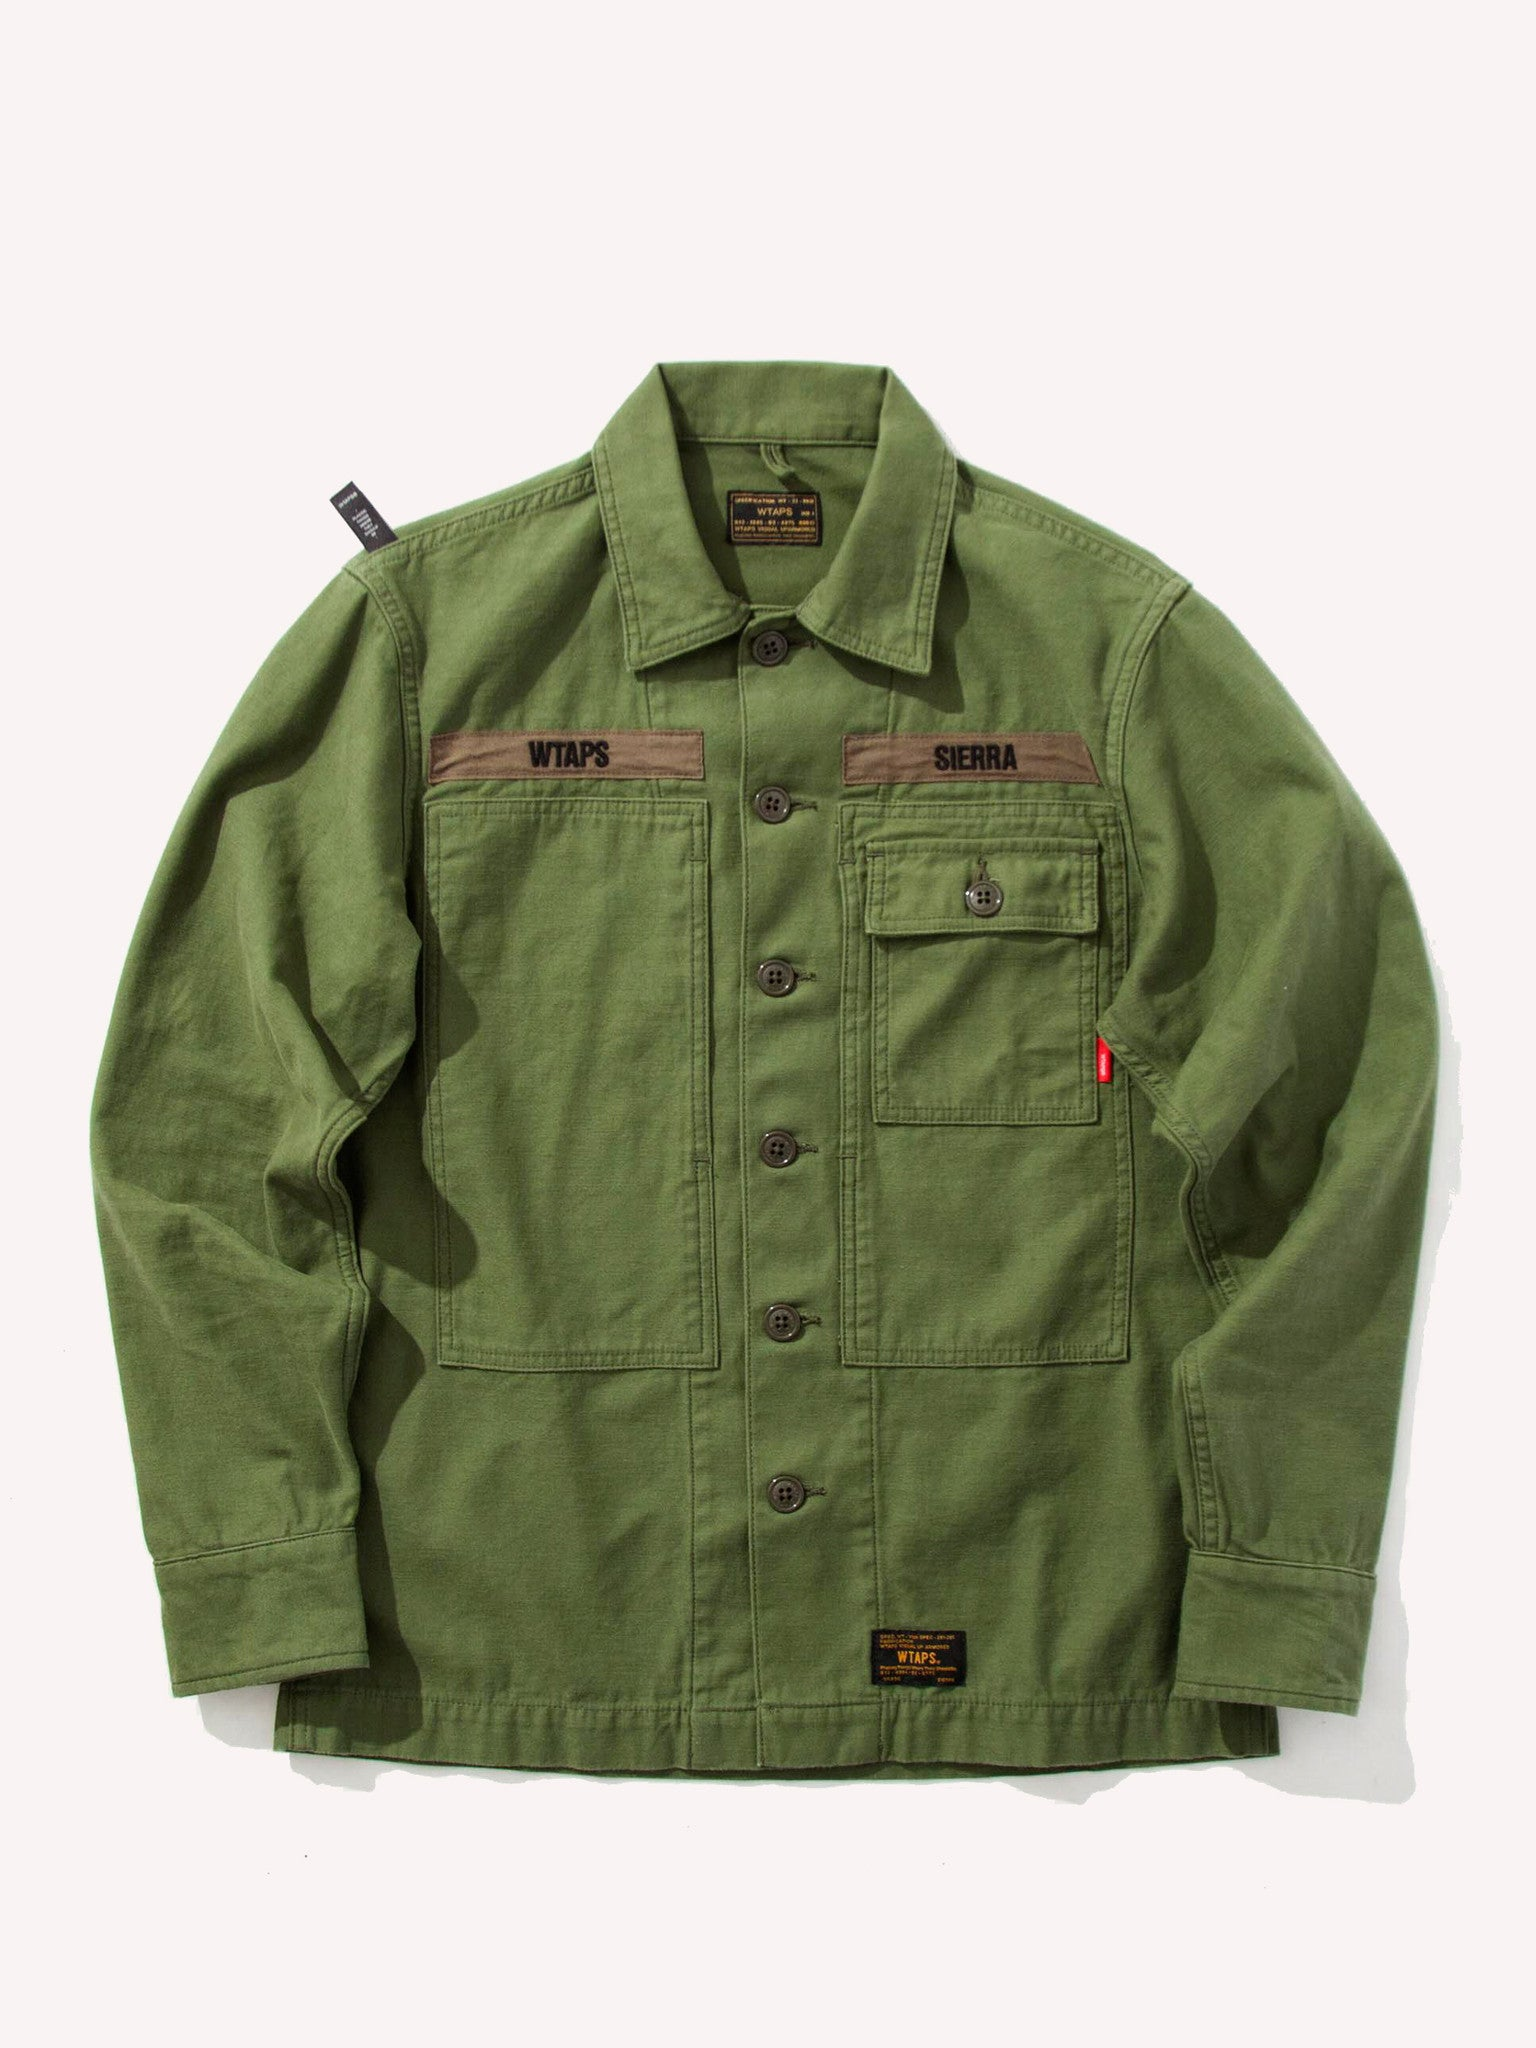 Olive Drab HBT LS 01 Shirt (Cotton/Satin) 1